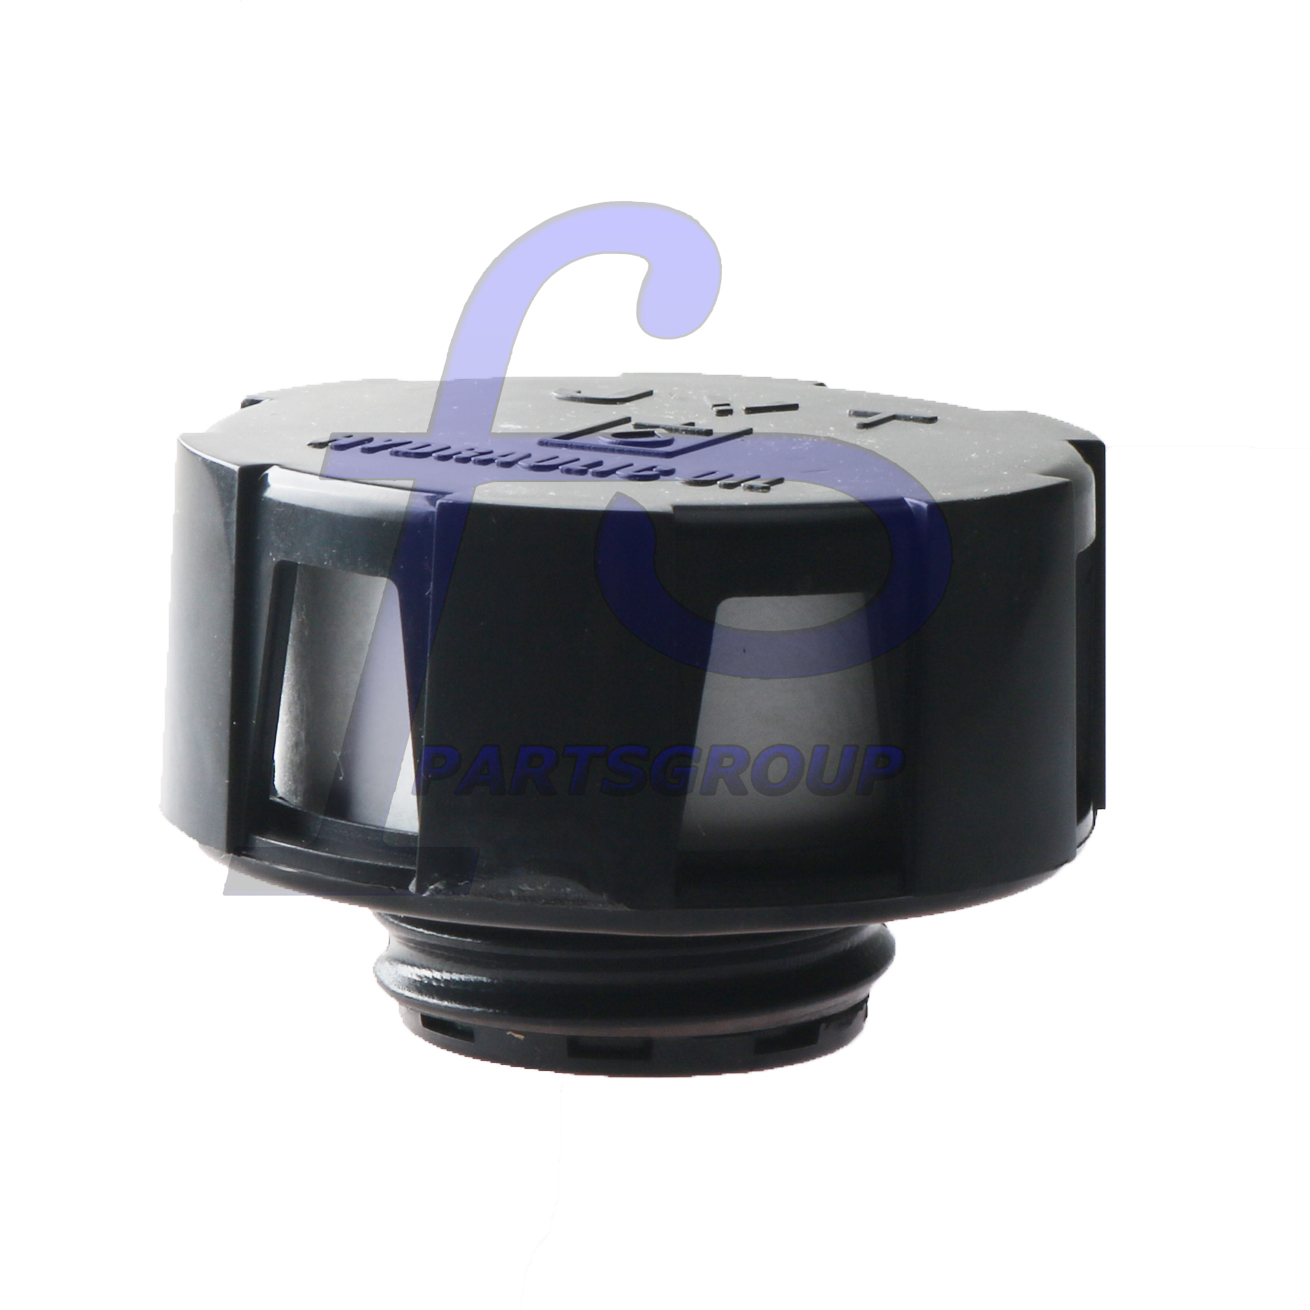 Details about Hydraulic Oil Vent Cap For Bobcat 730 731 732 741 742 743 751  753 763 843 853